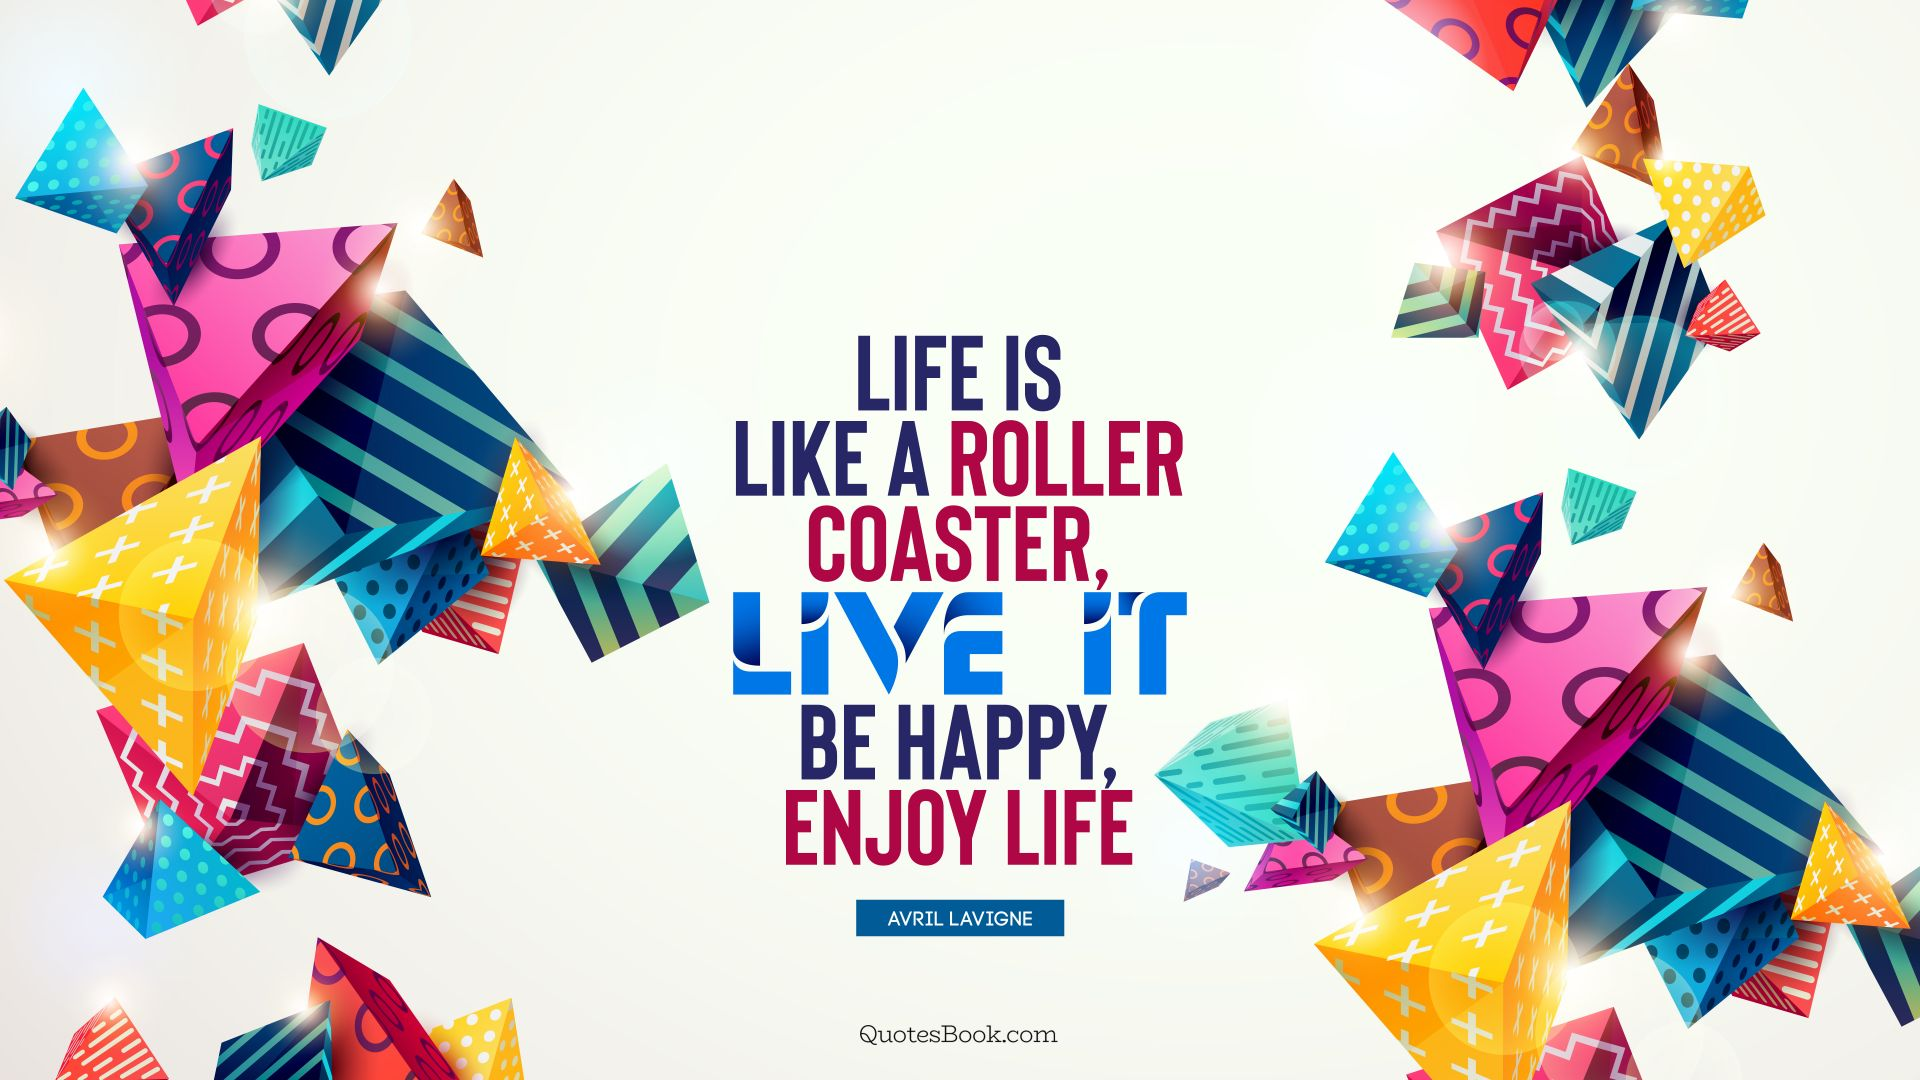 Life is like a roller coaster, live it, be happy, enjoy life. - Quote by Avril Lavigne